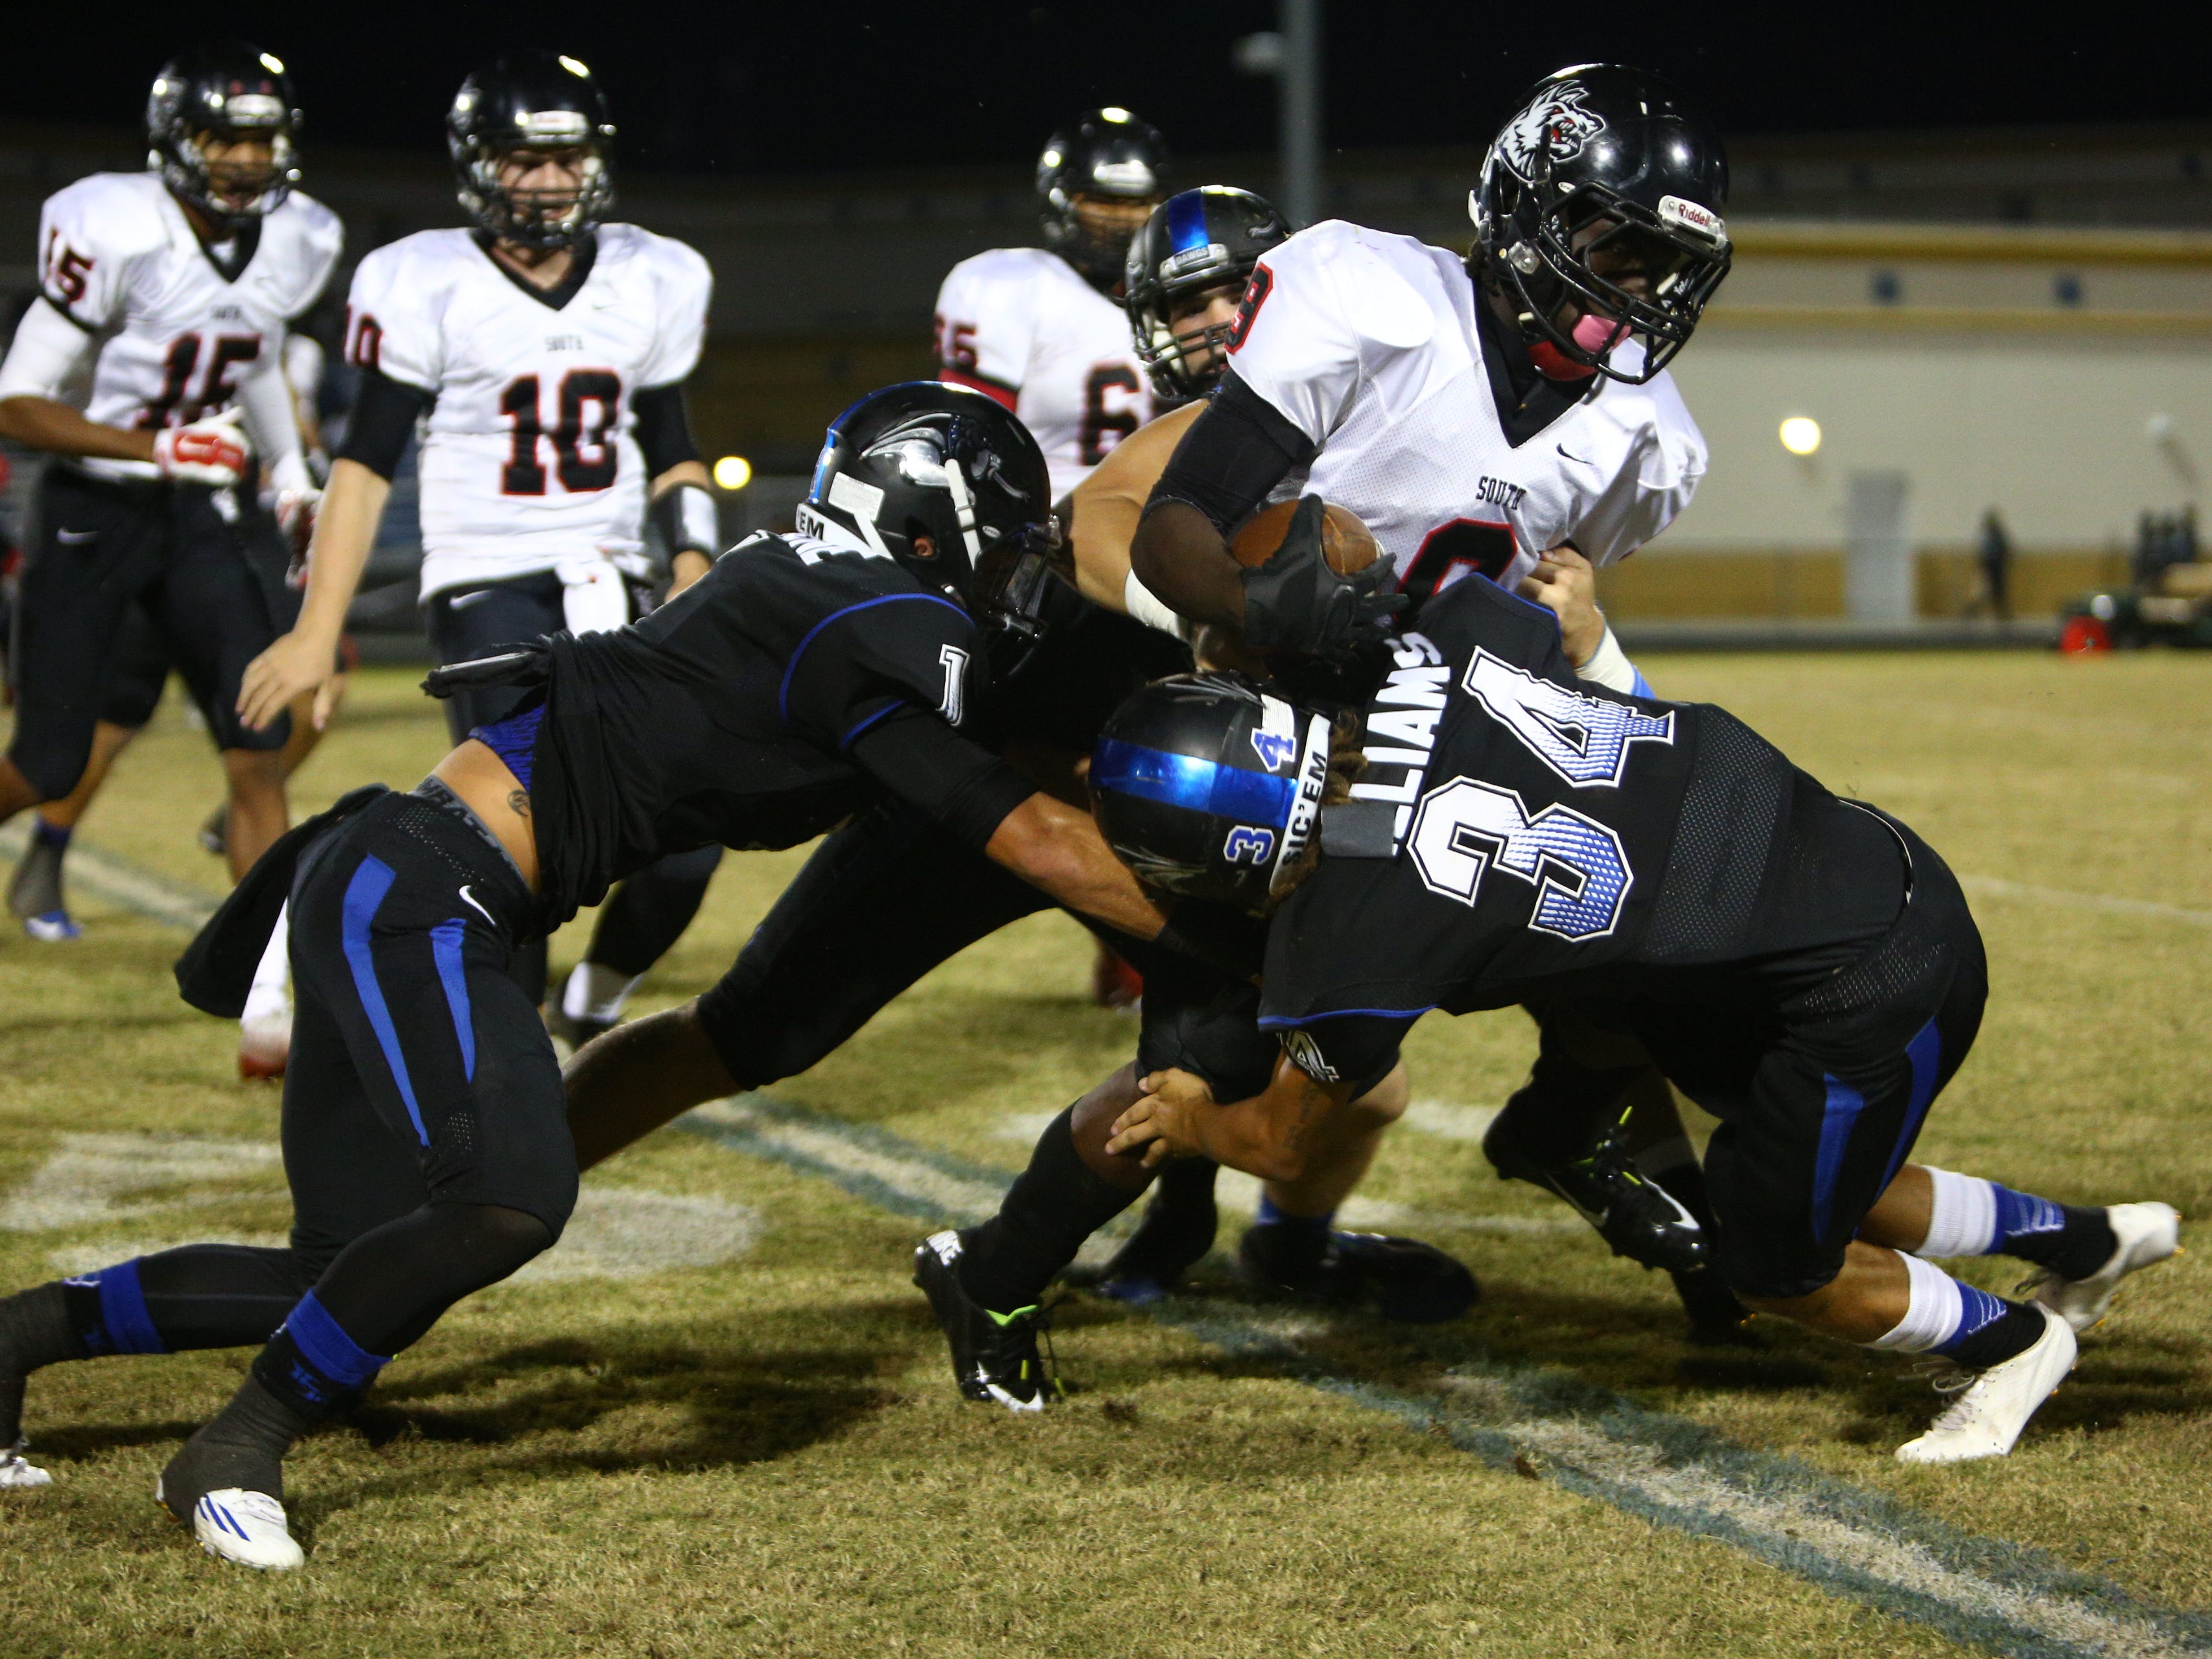 South Fort Myers' E'quan Dorris is tackled by Baker's Brennan Williams (34), Austin Maimone (1) and Zach Yankovich (42) during their game Friday night.